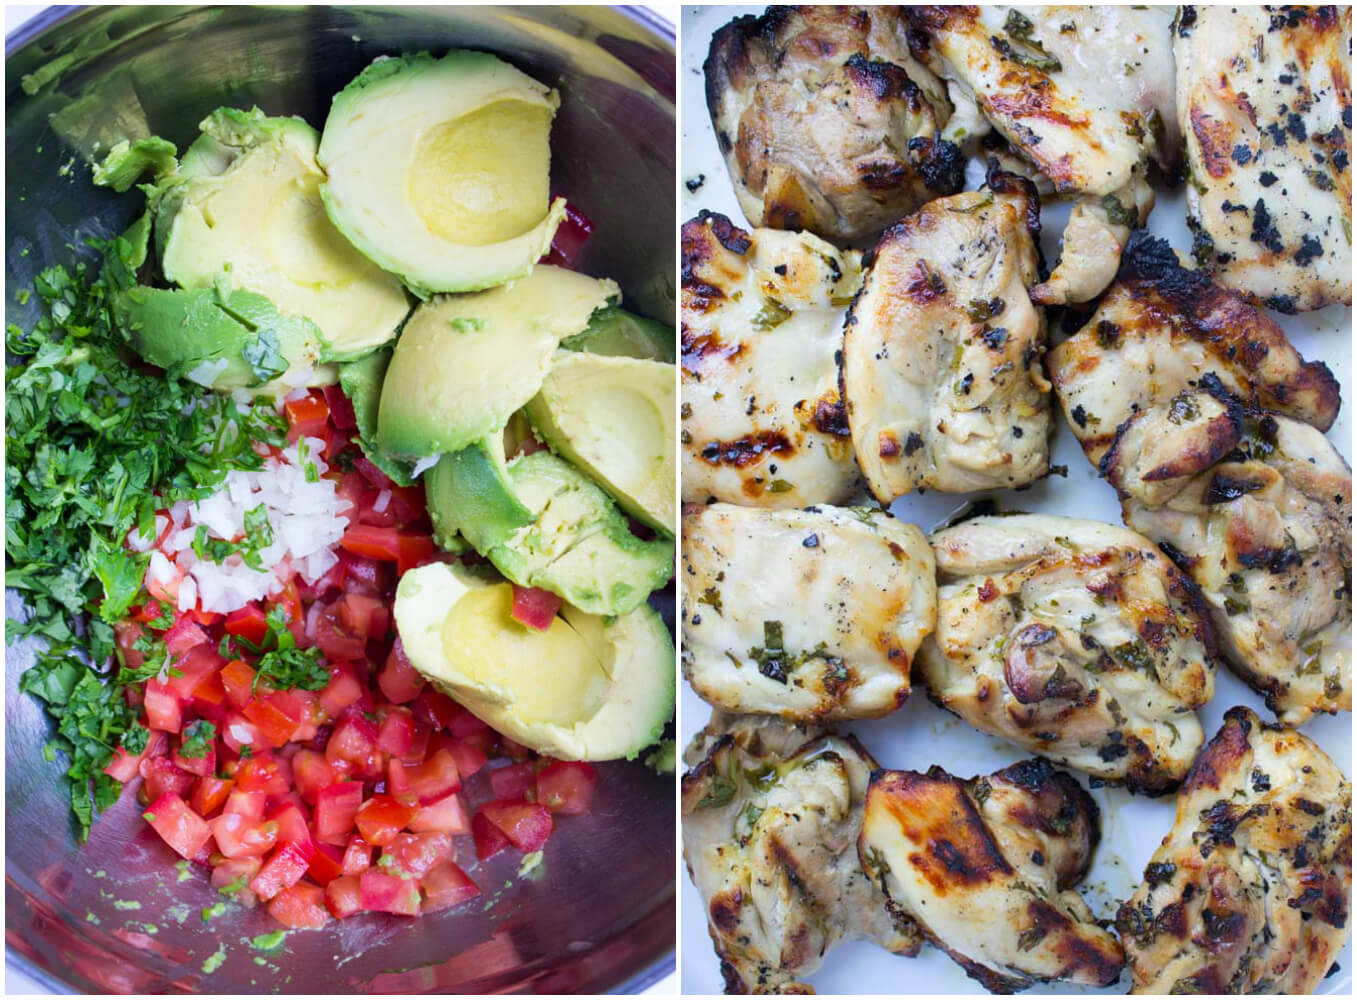 Super juicy chicken thighs grilled and topped with tomato guacamole for easy weeknight dinner | littlebroken.com @littlebroken.com